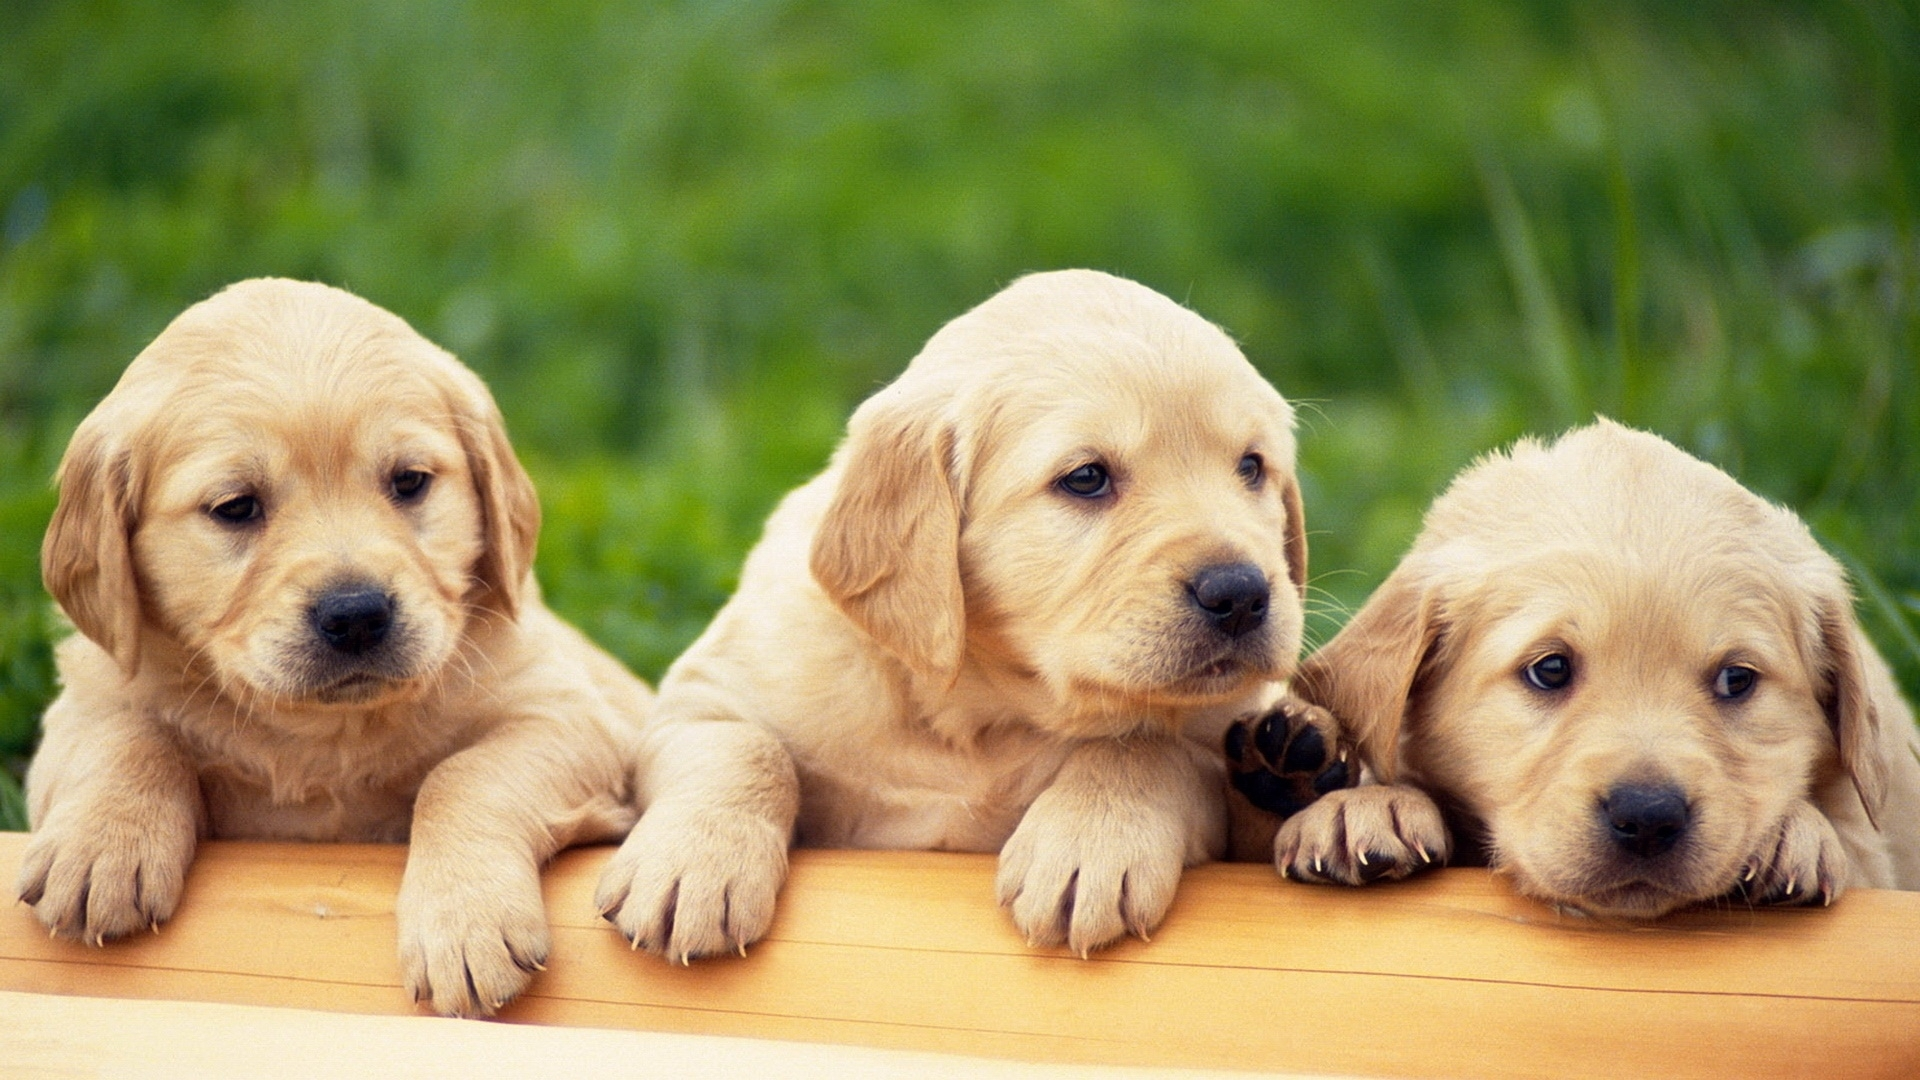 puppies | free hd top most downloaded wallpapers - page 12